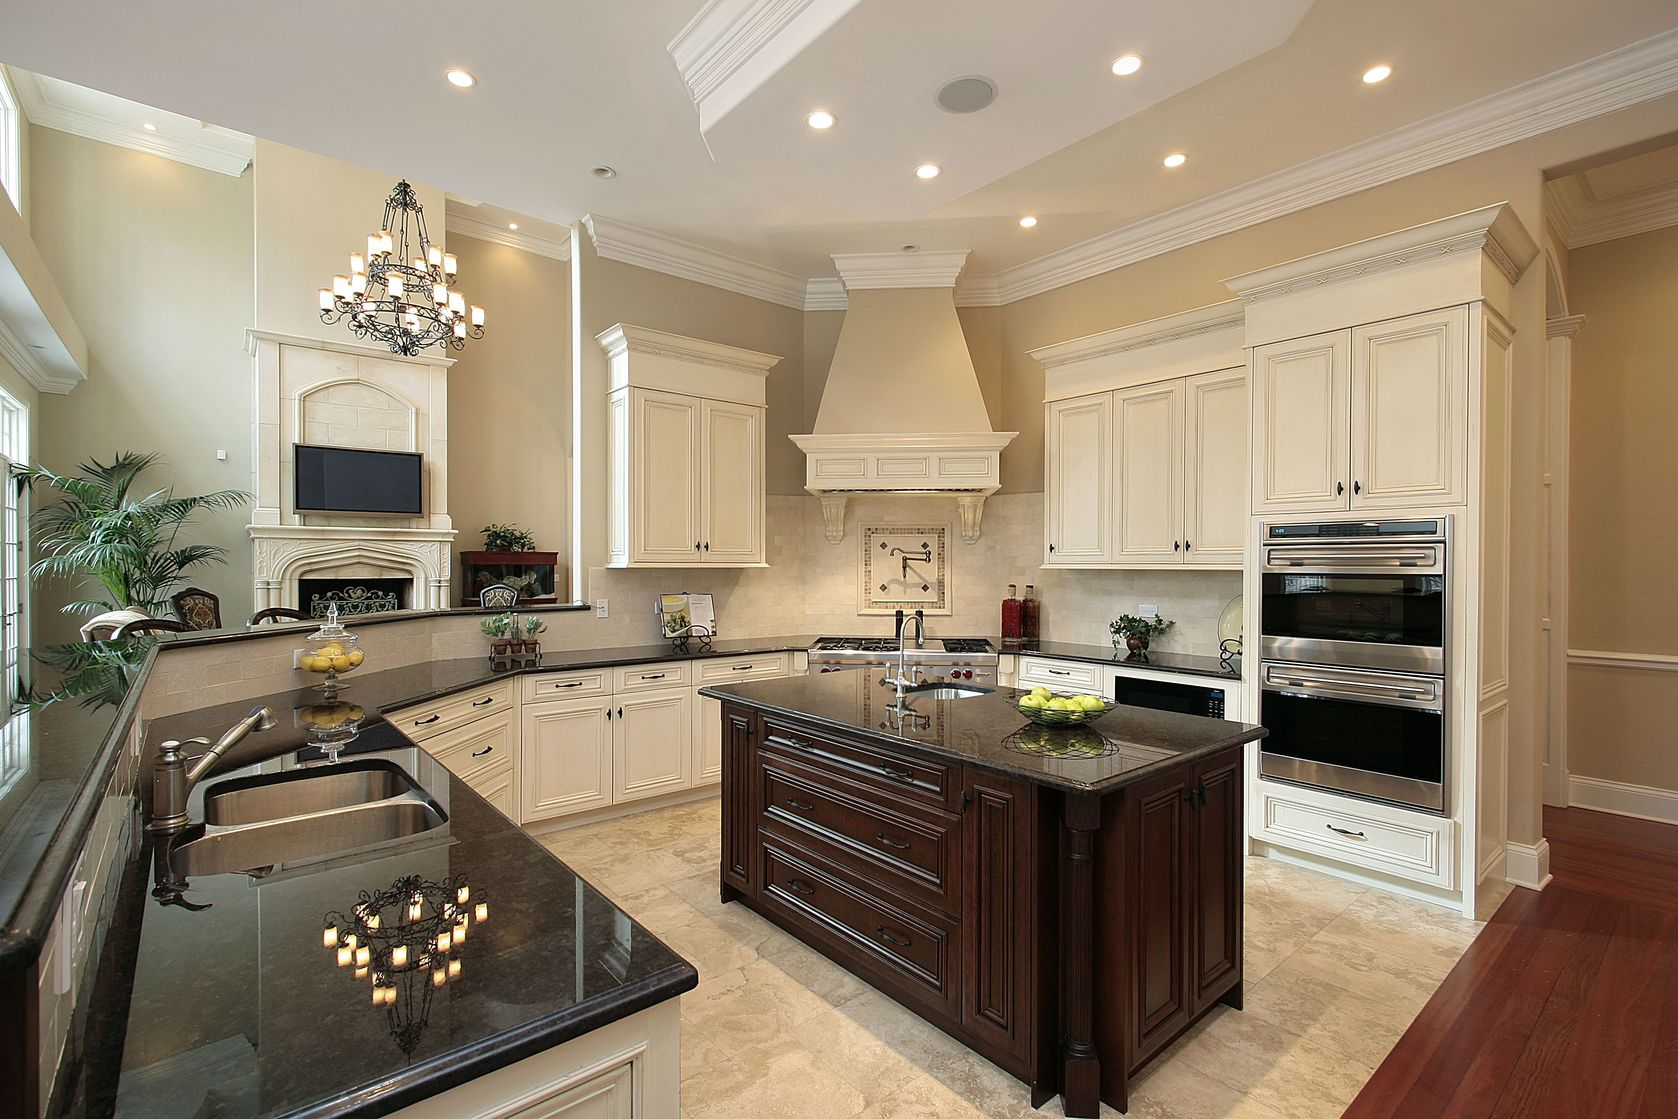 Custom Cabinets Washington Dc Custom Cabinets Cabinetry Contractor Baltimore Metro